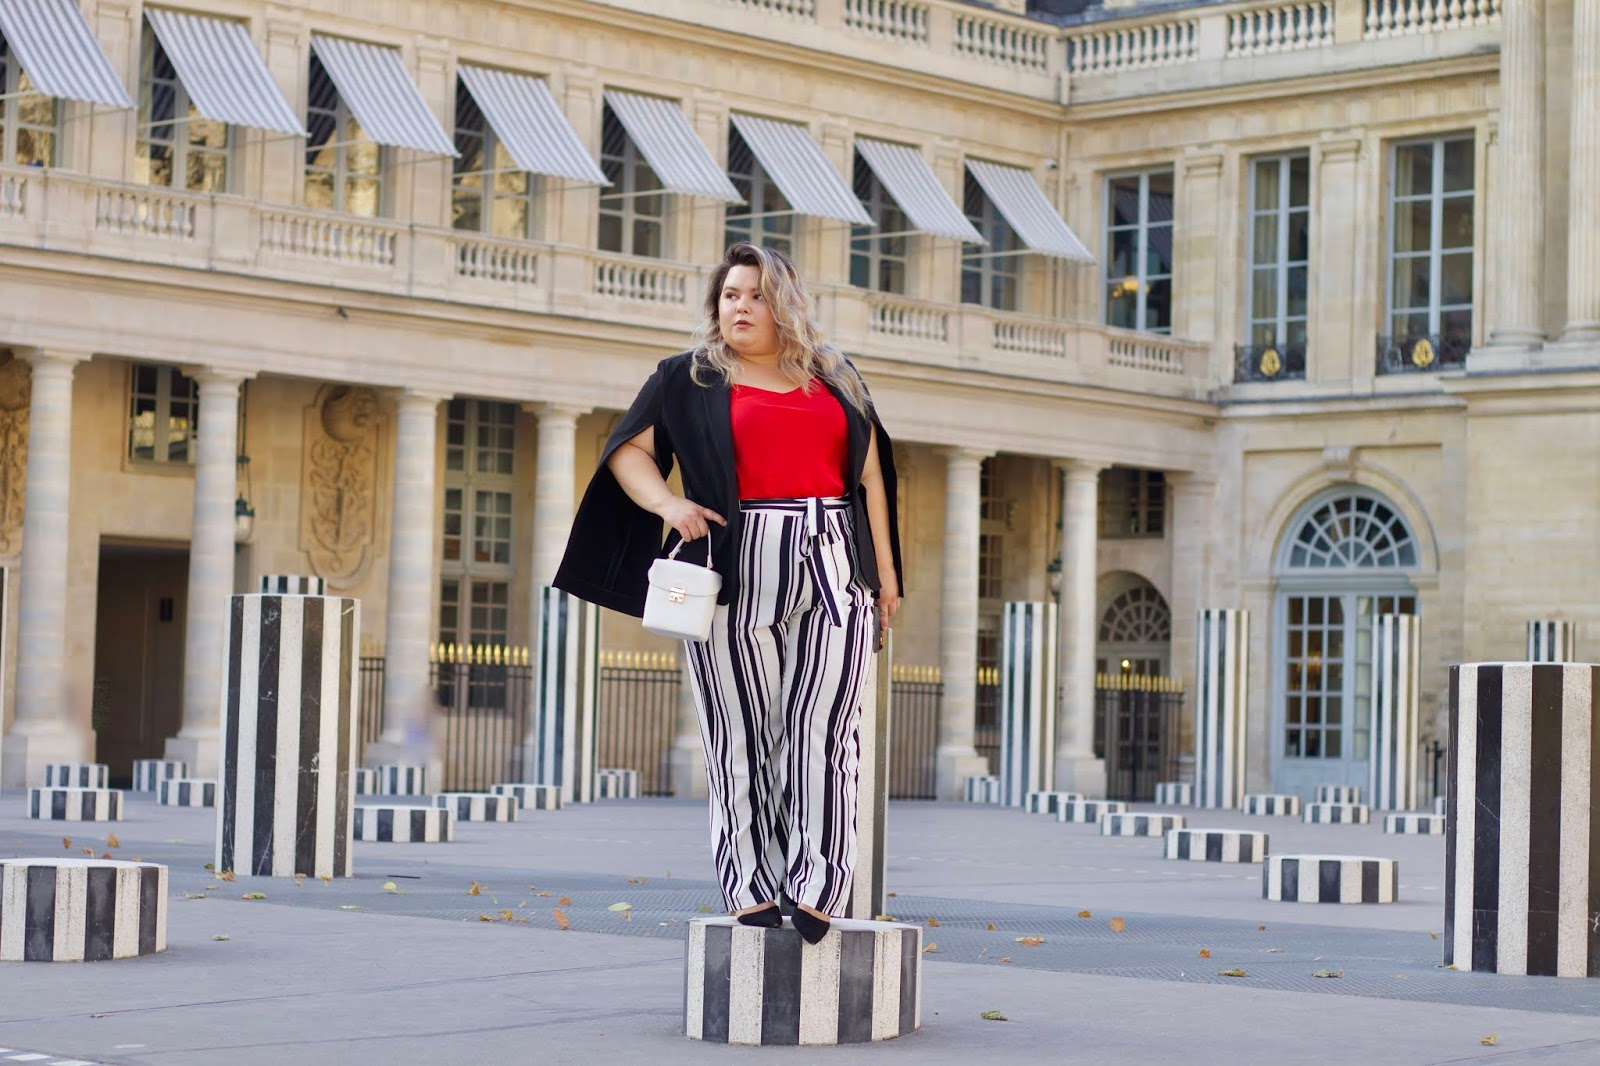 Chicago Plus Size Petite Fashion Blogger, influencer, YouTuber, and model Natalie Craig, of Natalie in the City, reviews Marée Pour Toi's Black and White Striped Pants, Red Washed Silk Charmeuse Tank, and Open Sleeve Blazer while visiting Paris, France and Les Deux Plateaux (also known as the Colonnes de Buren or stripe pillars) in Palais Royal.